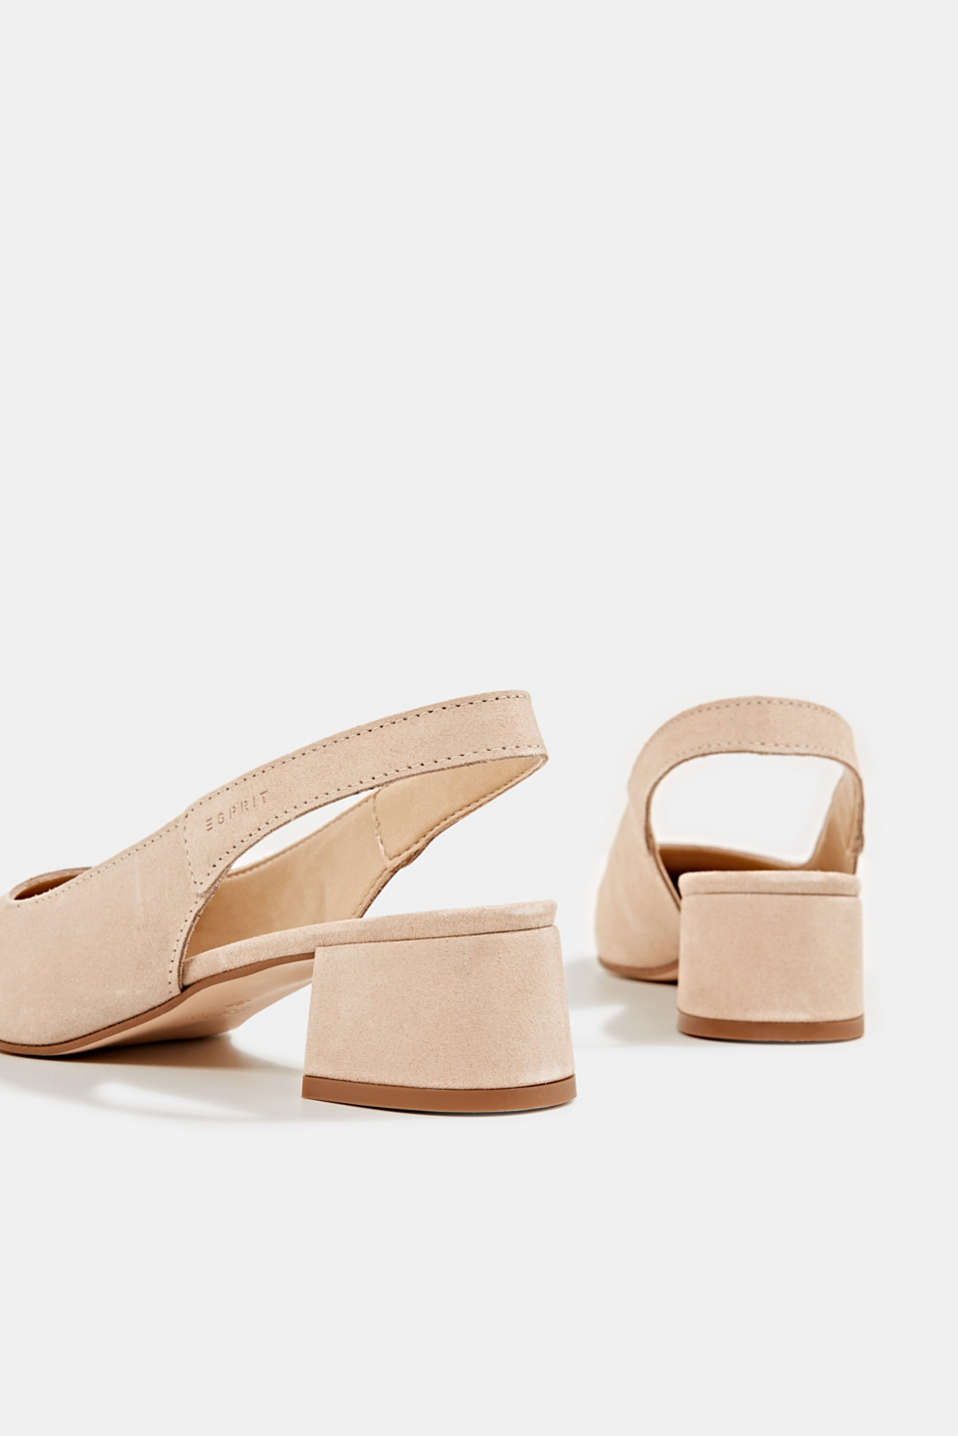 Leather sling back court shoes, NUDE, detail image number 4